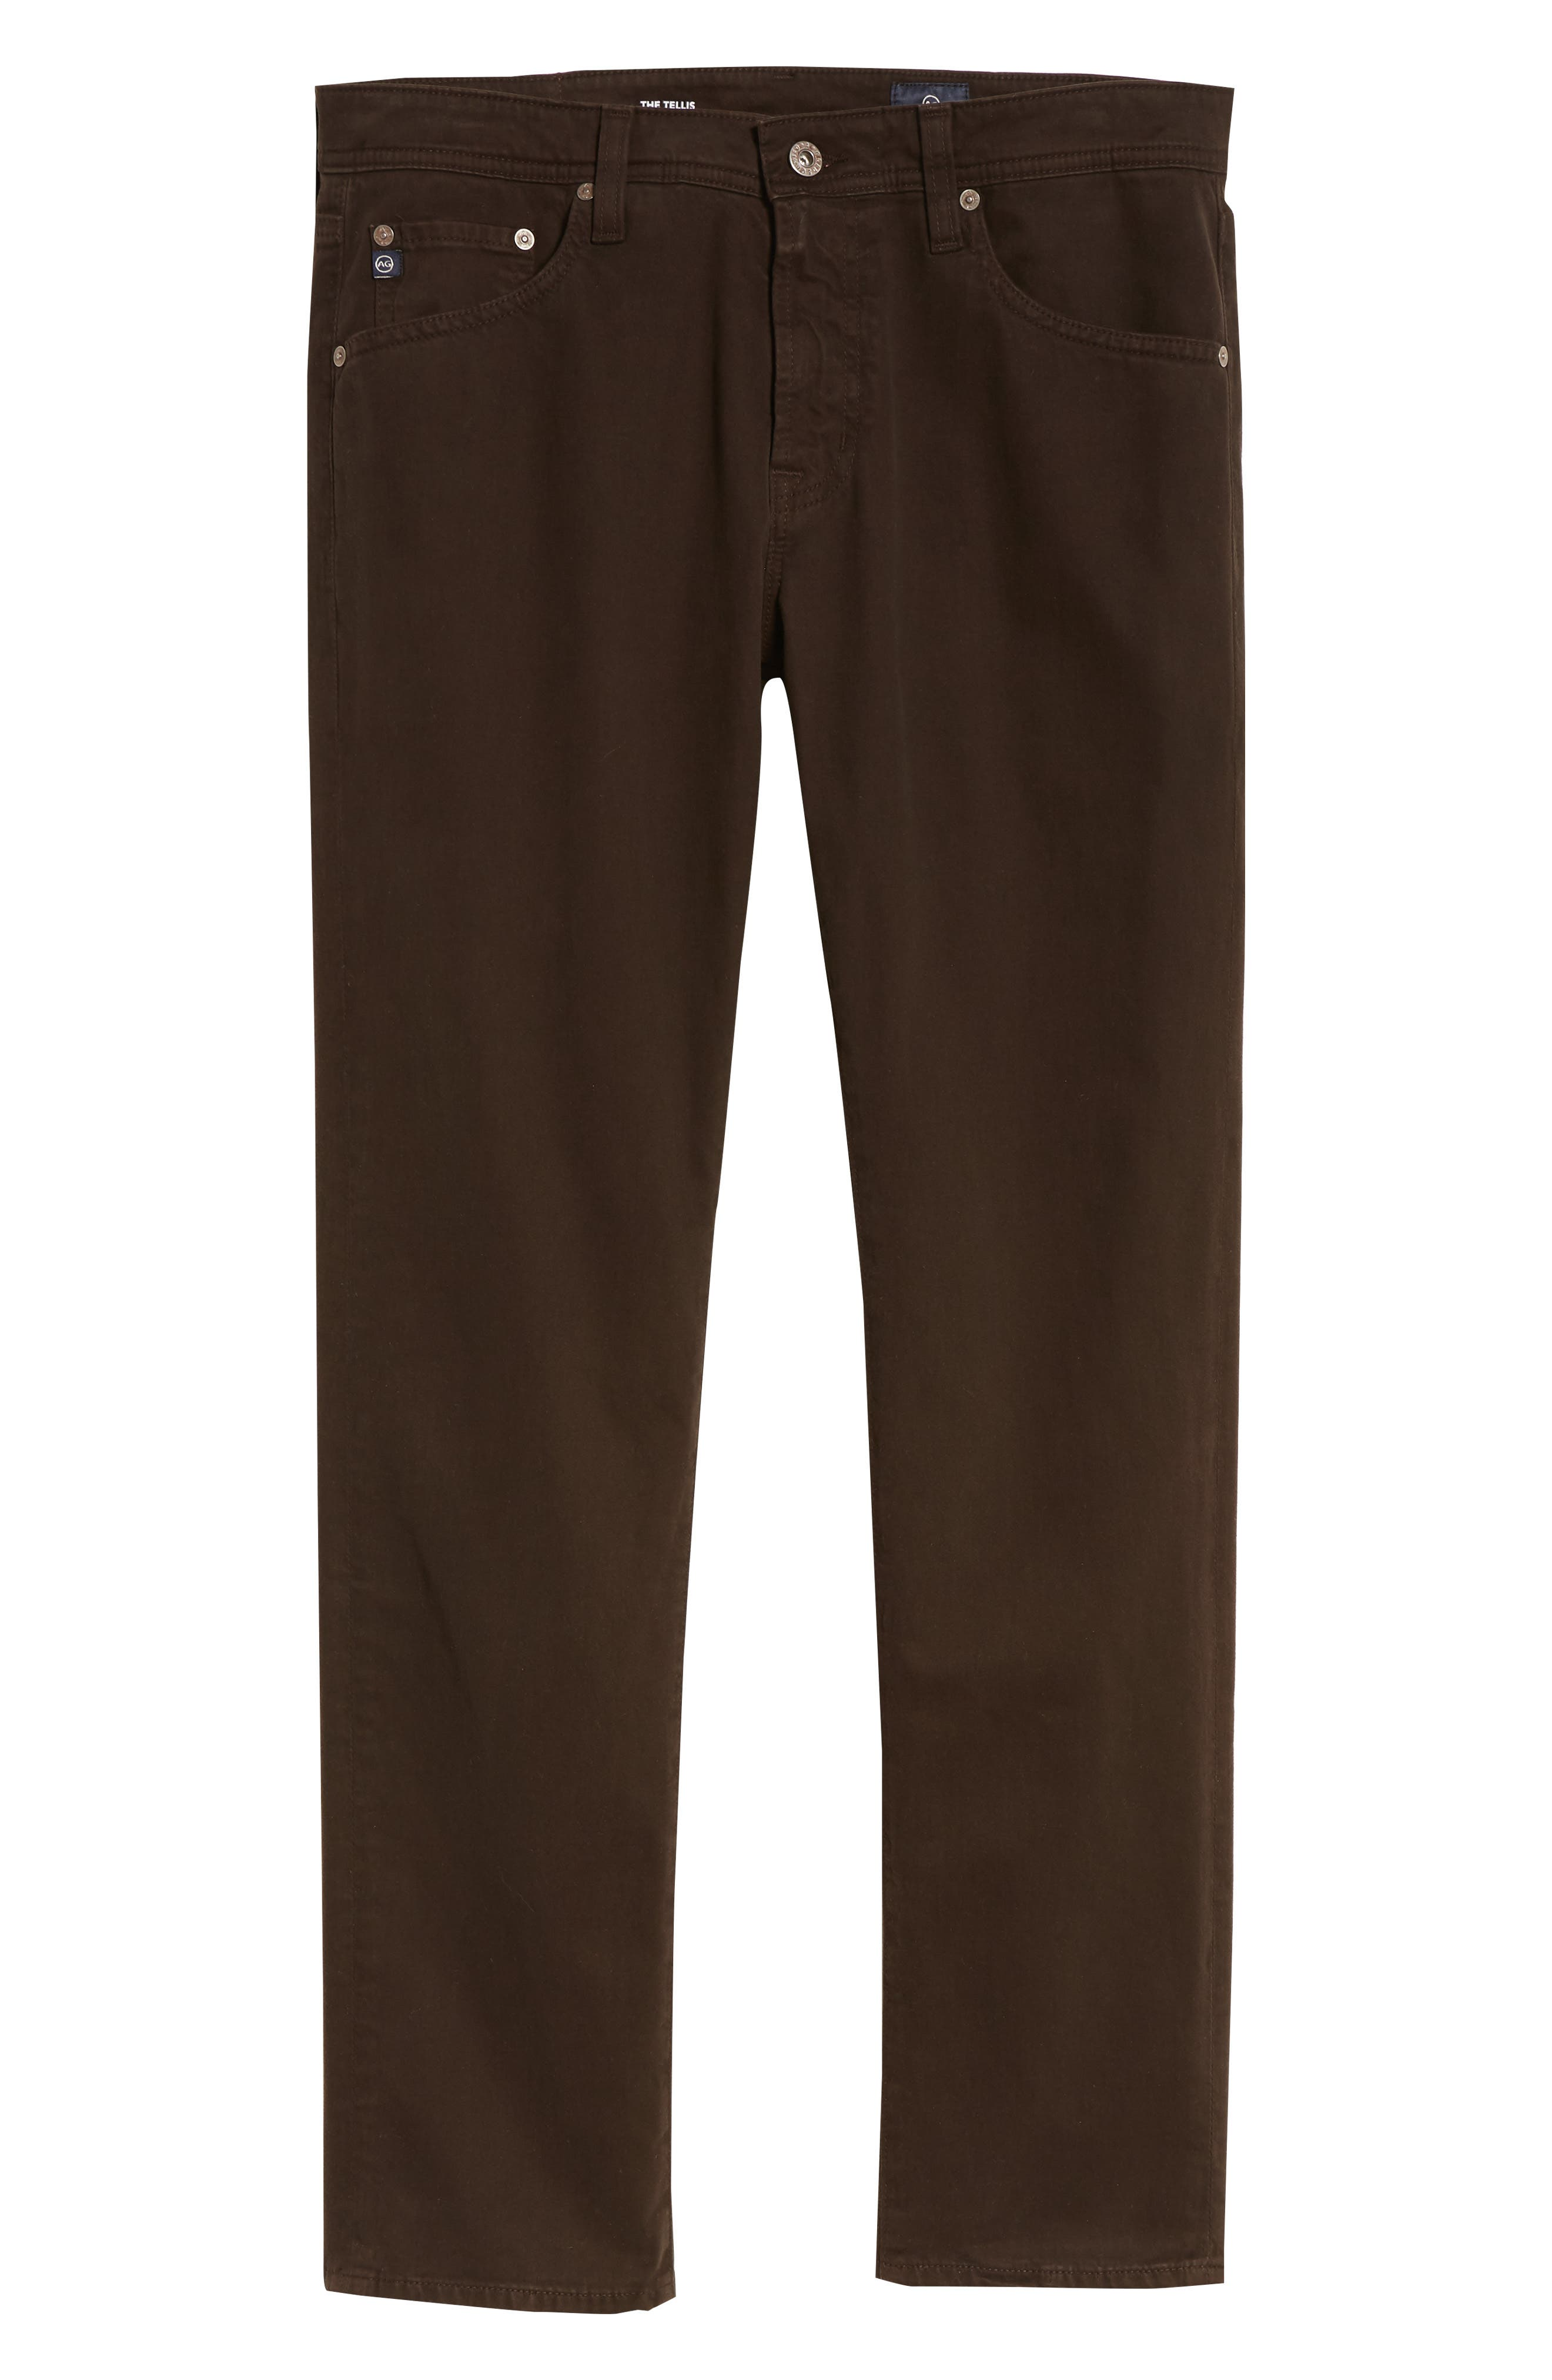 Tellis SUD Modern Slim Stretch Twill Pants,                             Alternate thumbnail 6, color,                             SHUTTER BROWN